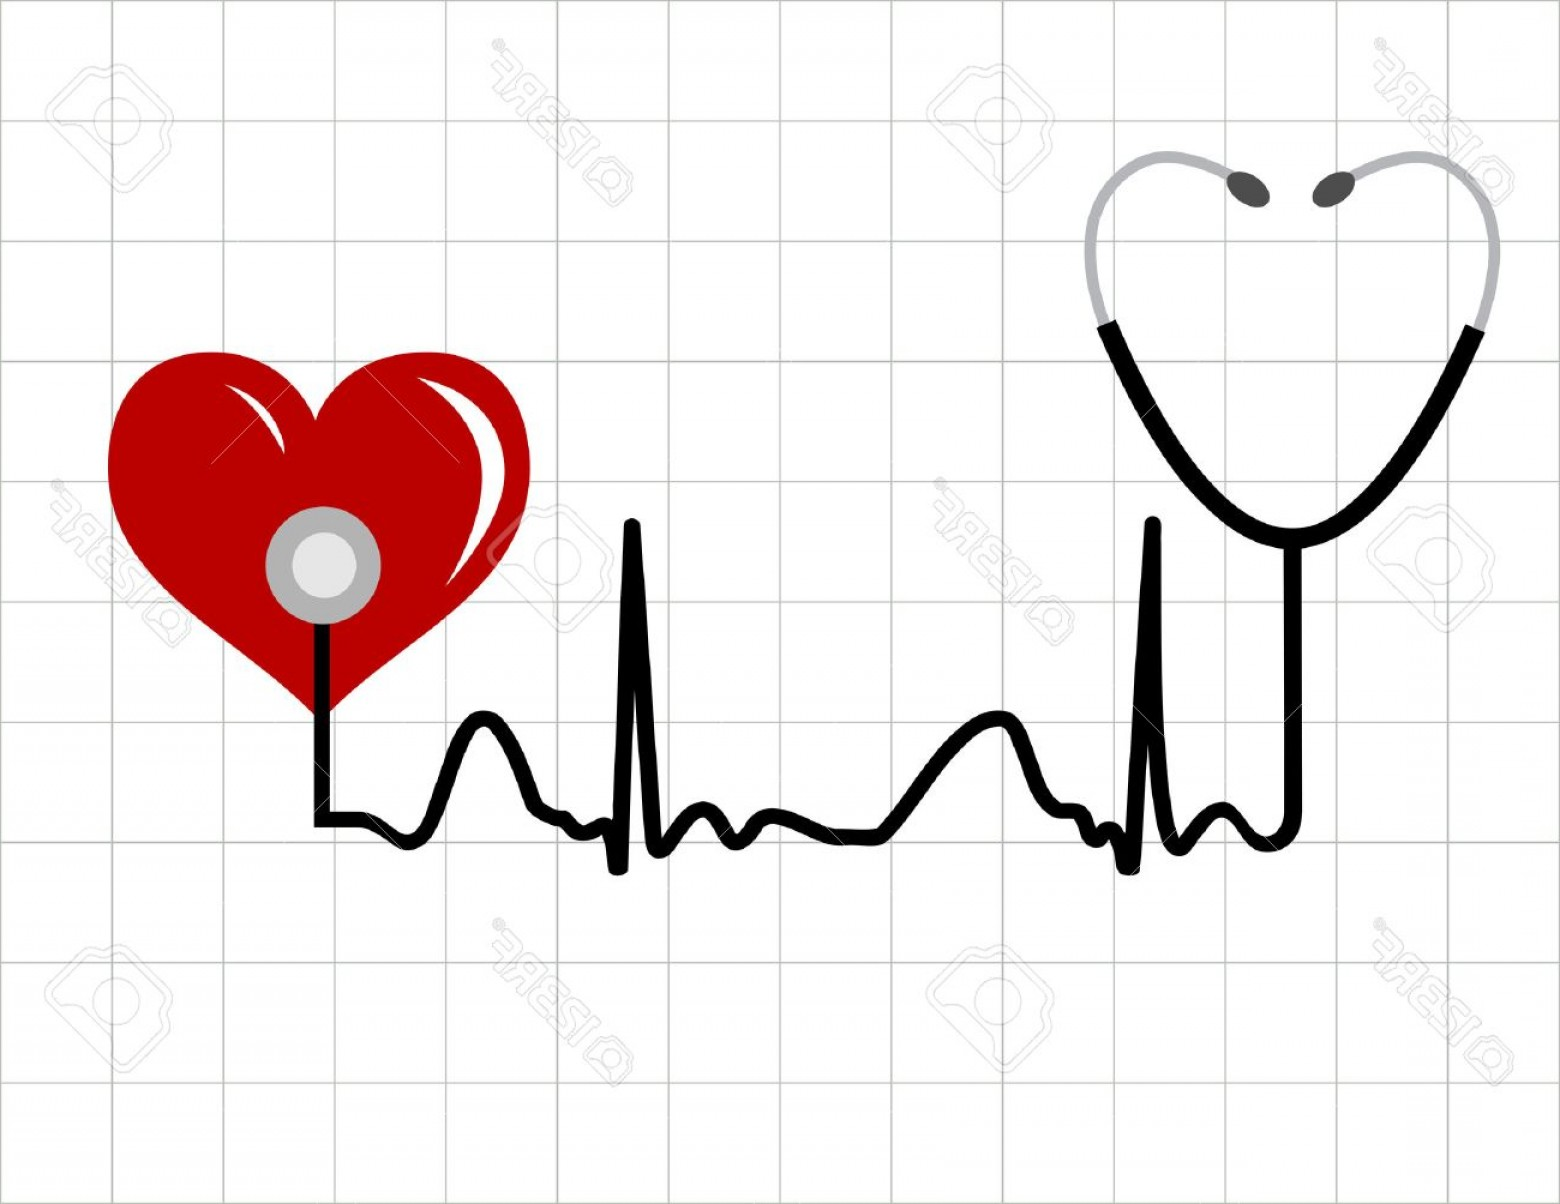 Stethoscope With Heart Vector Art: Photoheart And A Medical Stethoscope With Heartbeat Pulse Symbol